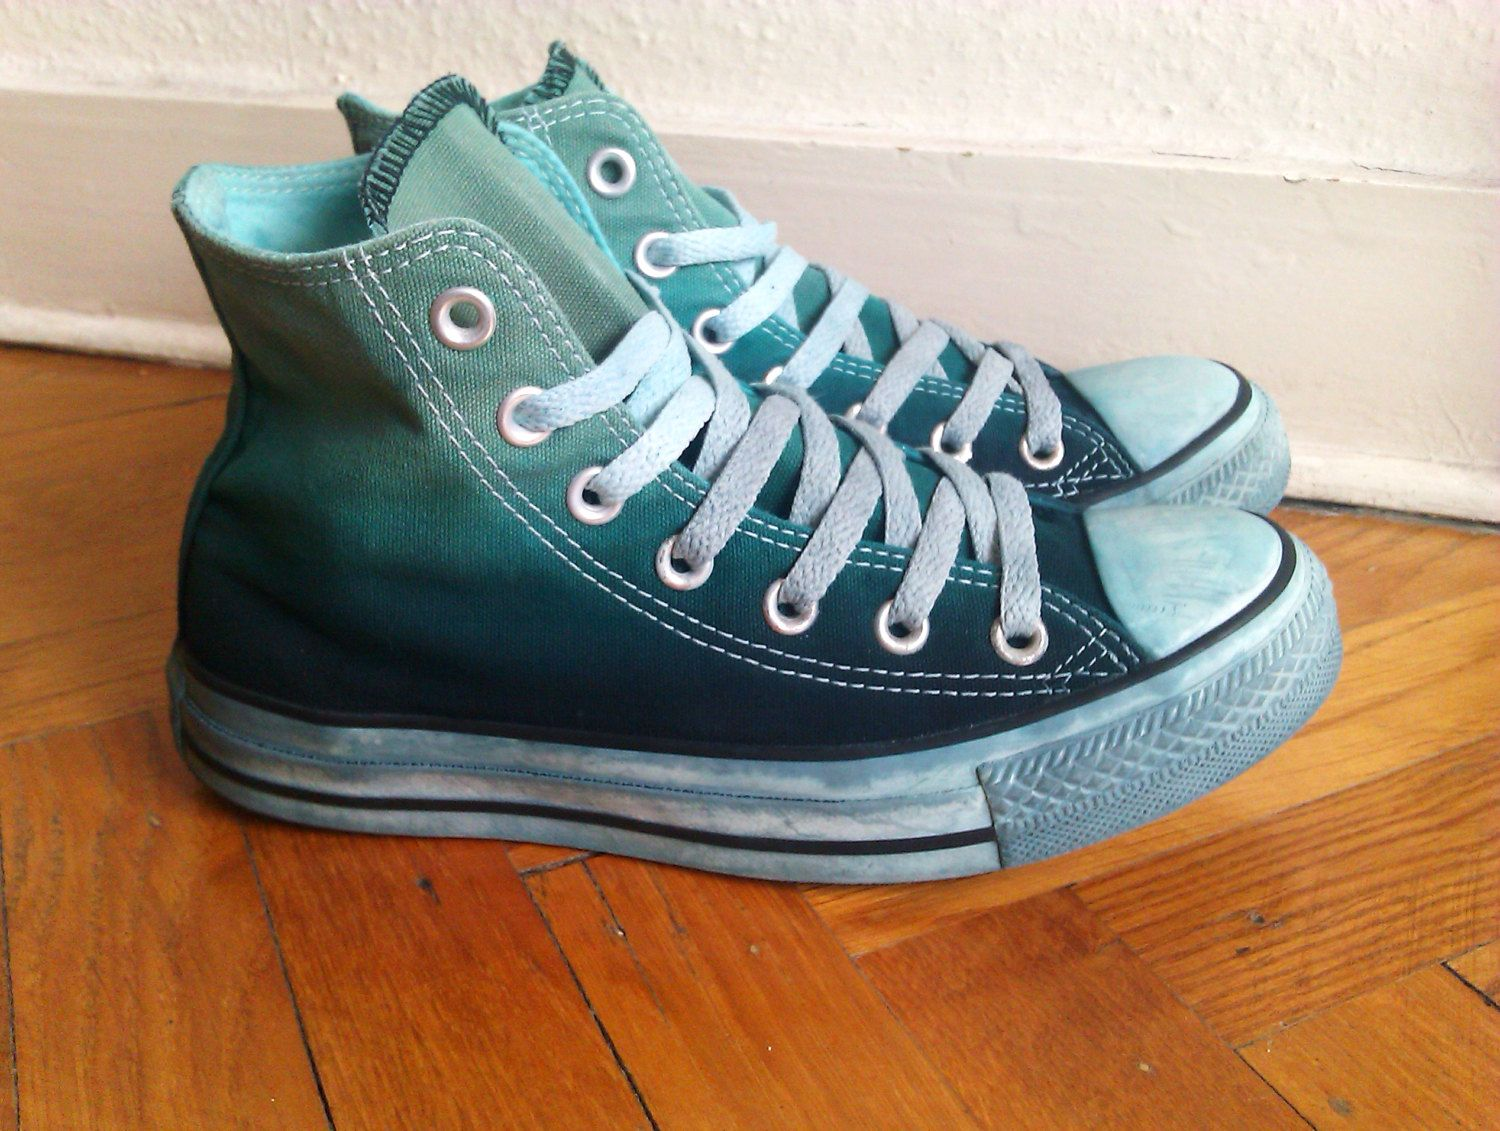 71e0d5472171 Upcycled dip dye ombre Converse all stars chucks